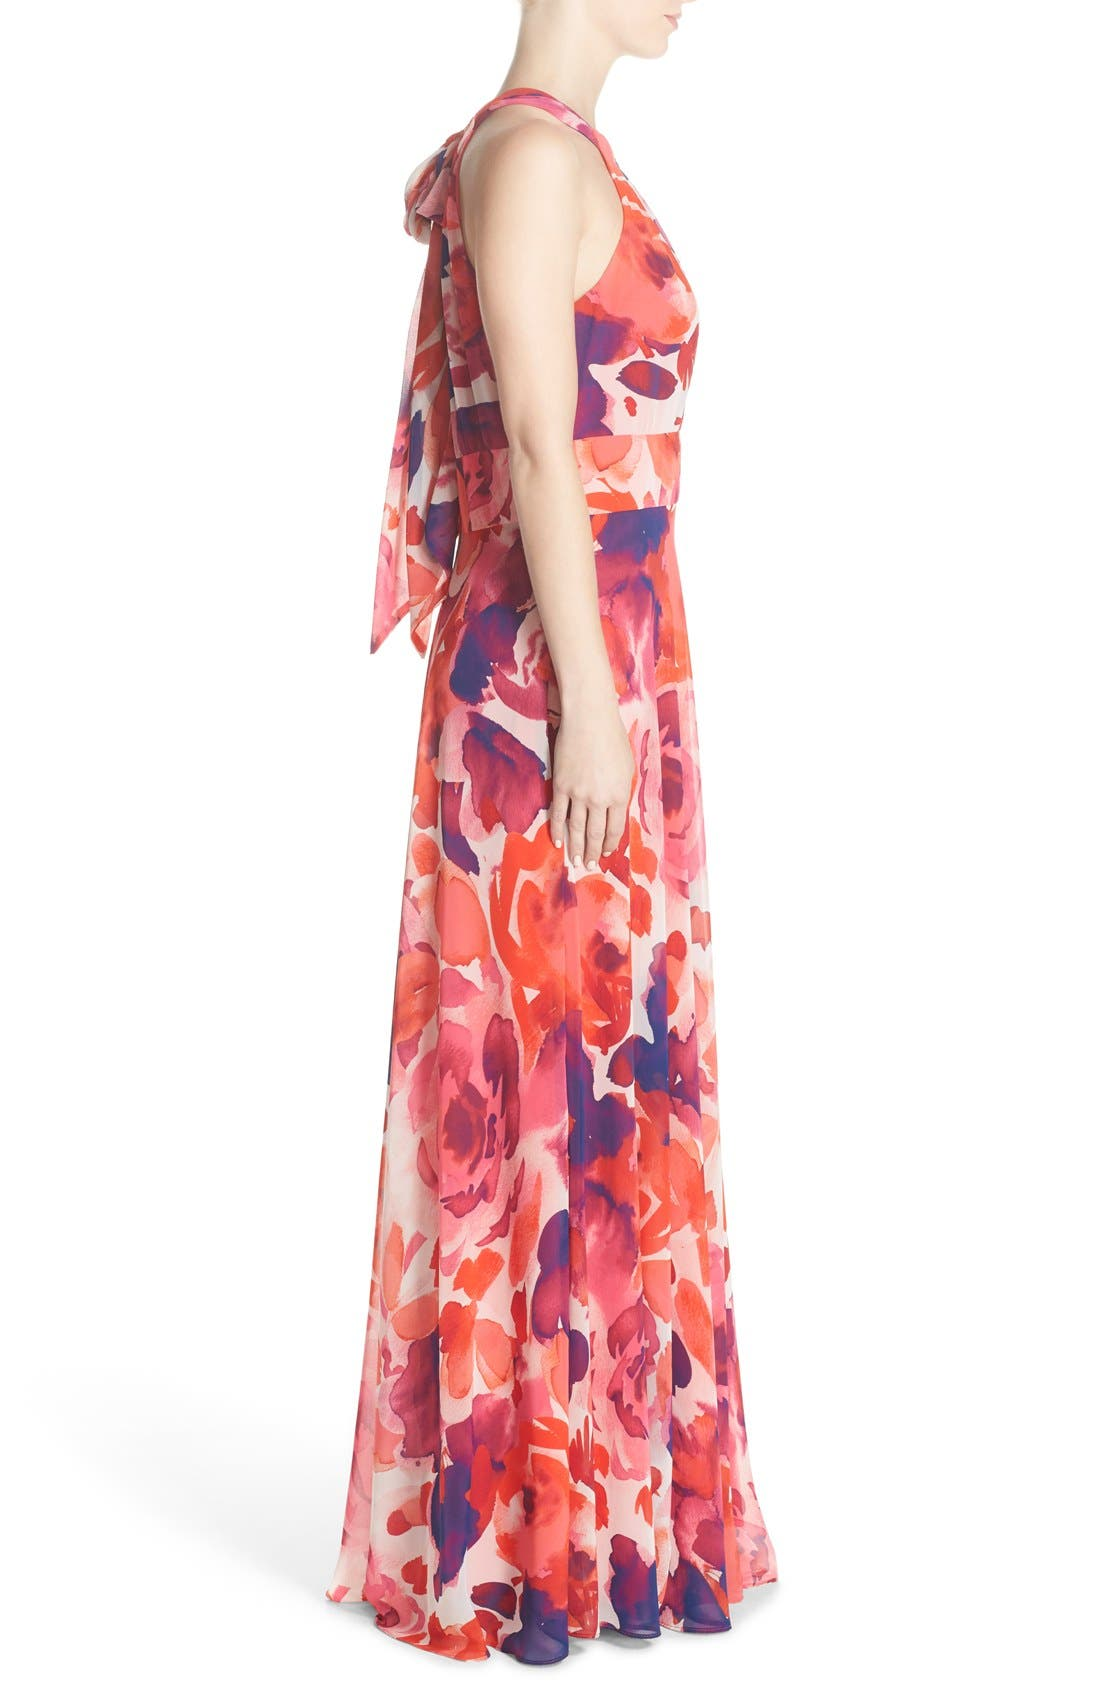 ELIZA J, Floral Print Halter Maxi Dress, Alternate thumbnail 4, color, PINK/ CORAL/ PURPLE